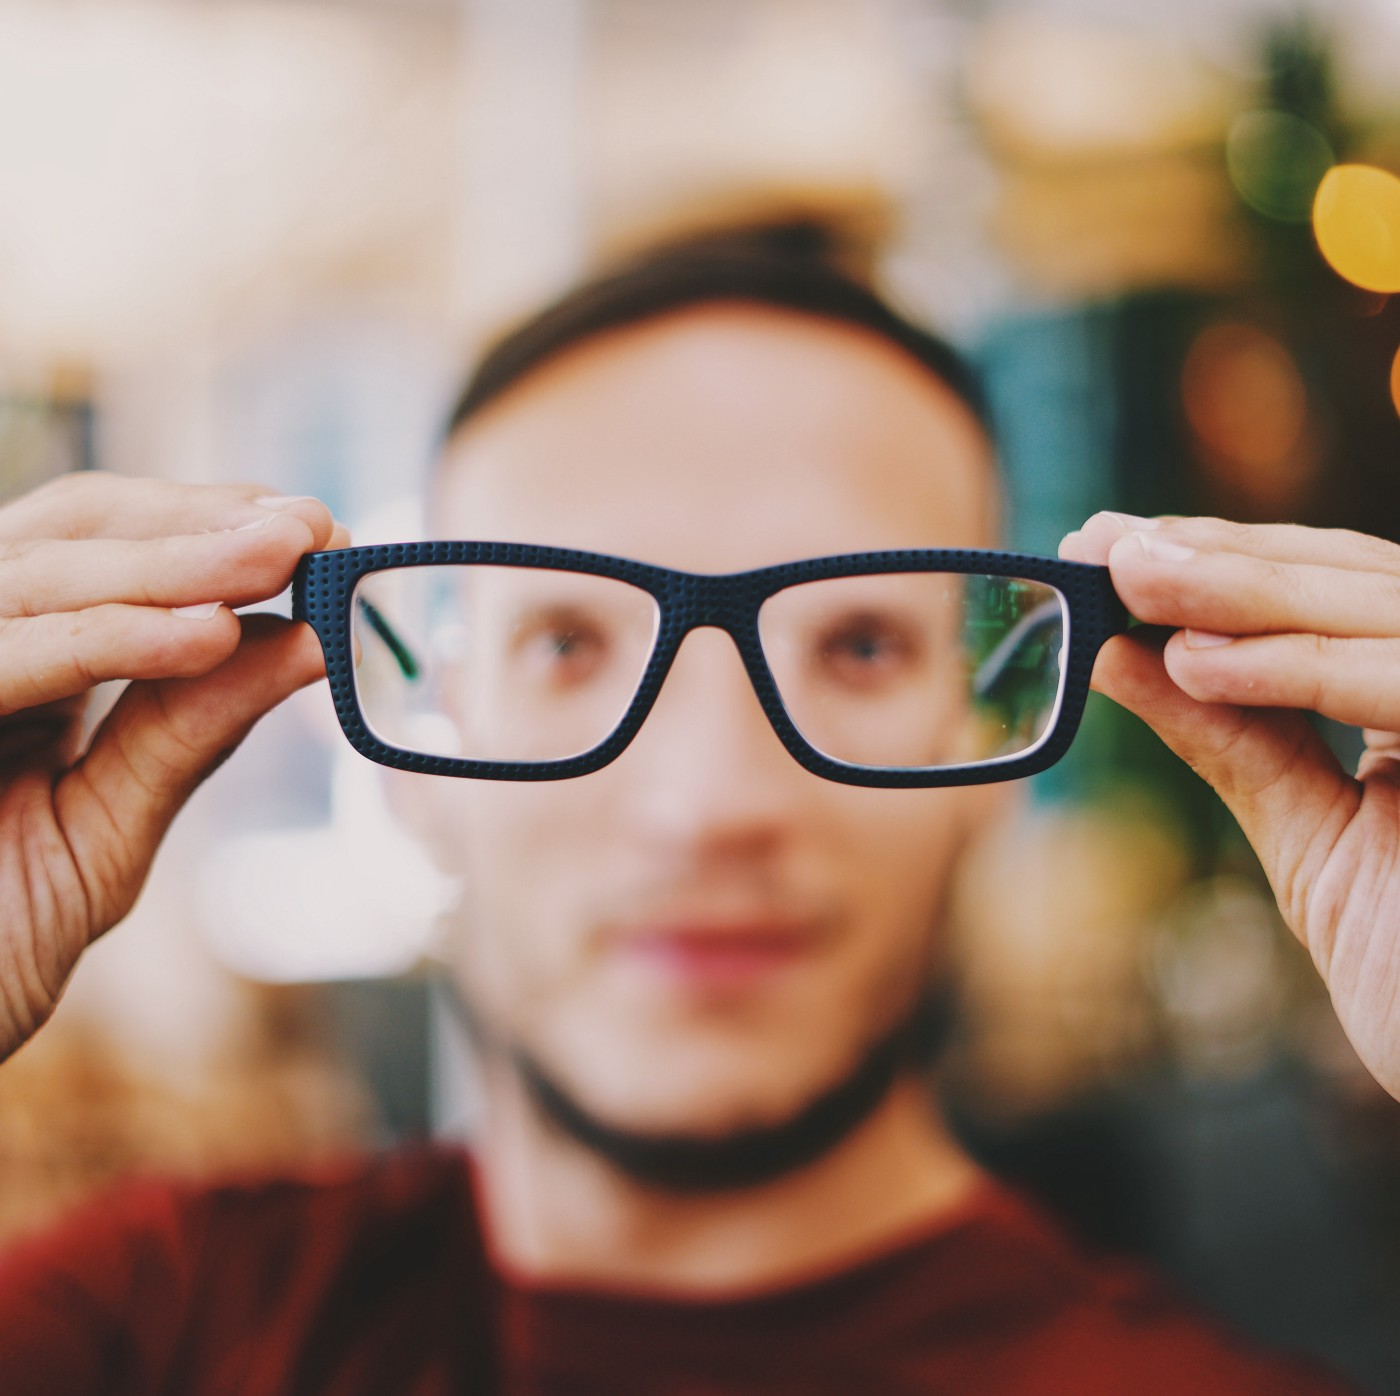 Man holding his glasses away from his face bringing the world into focus